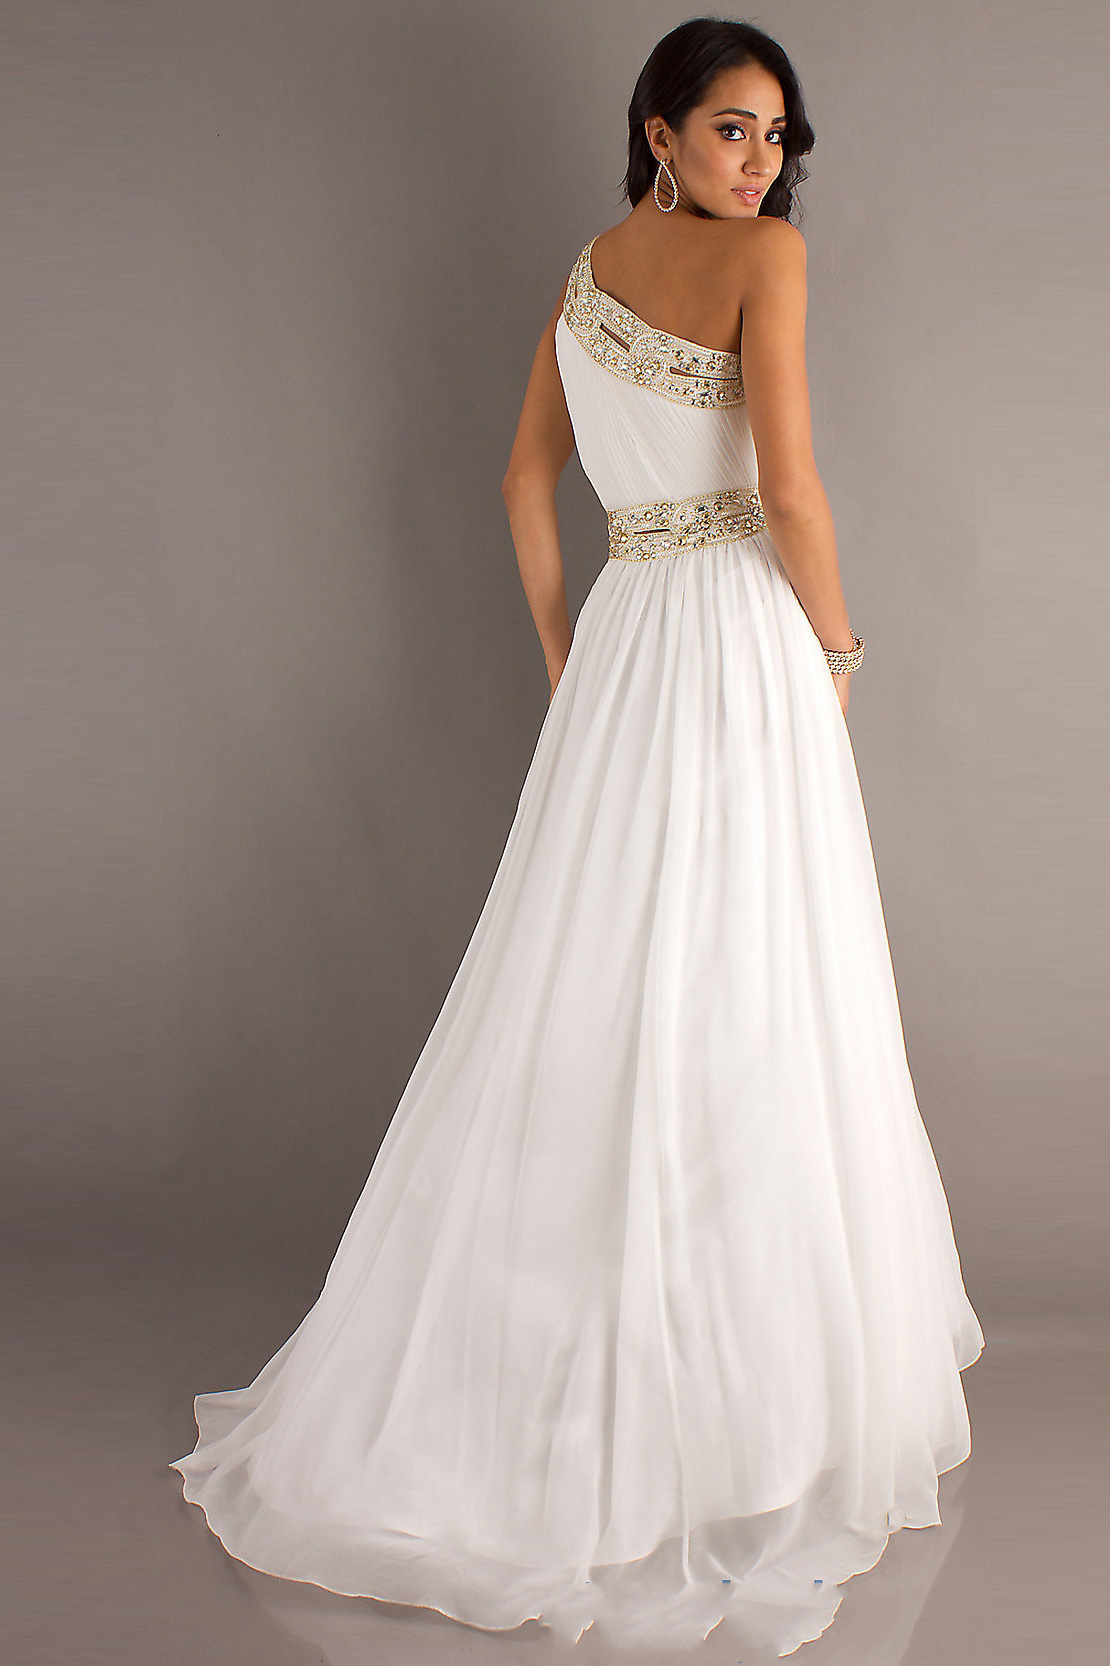 White Dresses For Prom 48